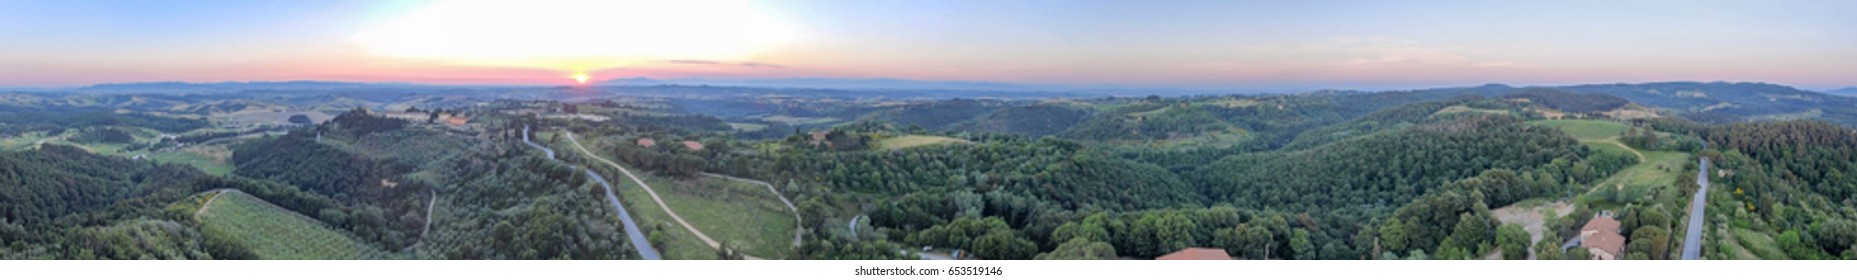 Amazing sunset panoramic aerial view of Tuscany hills in spring season - Italy.